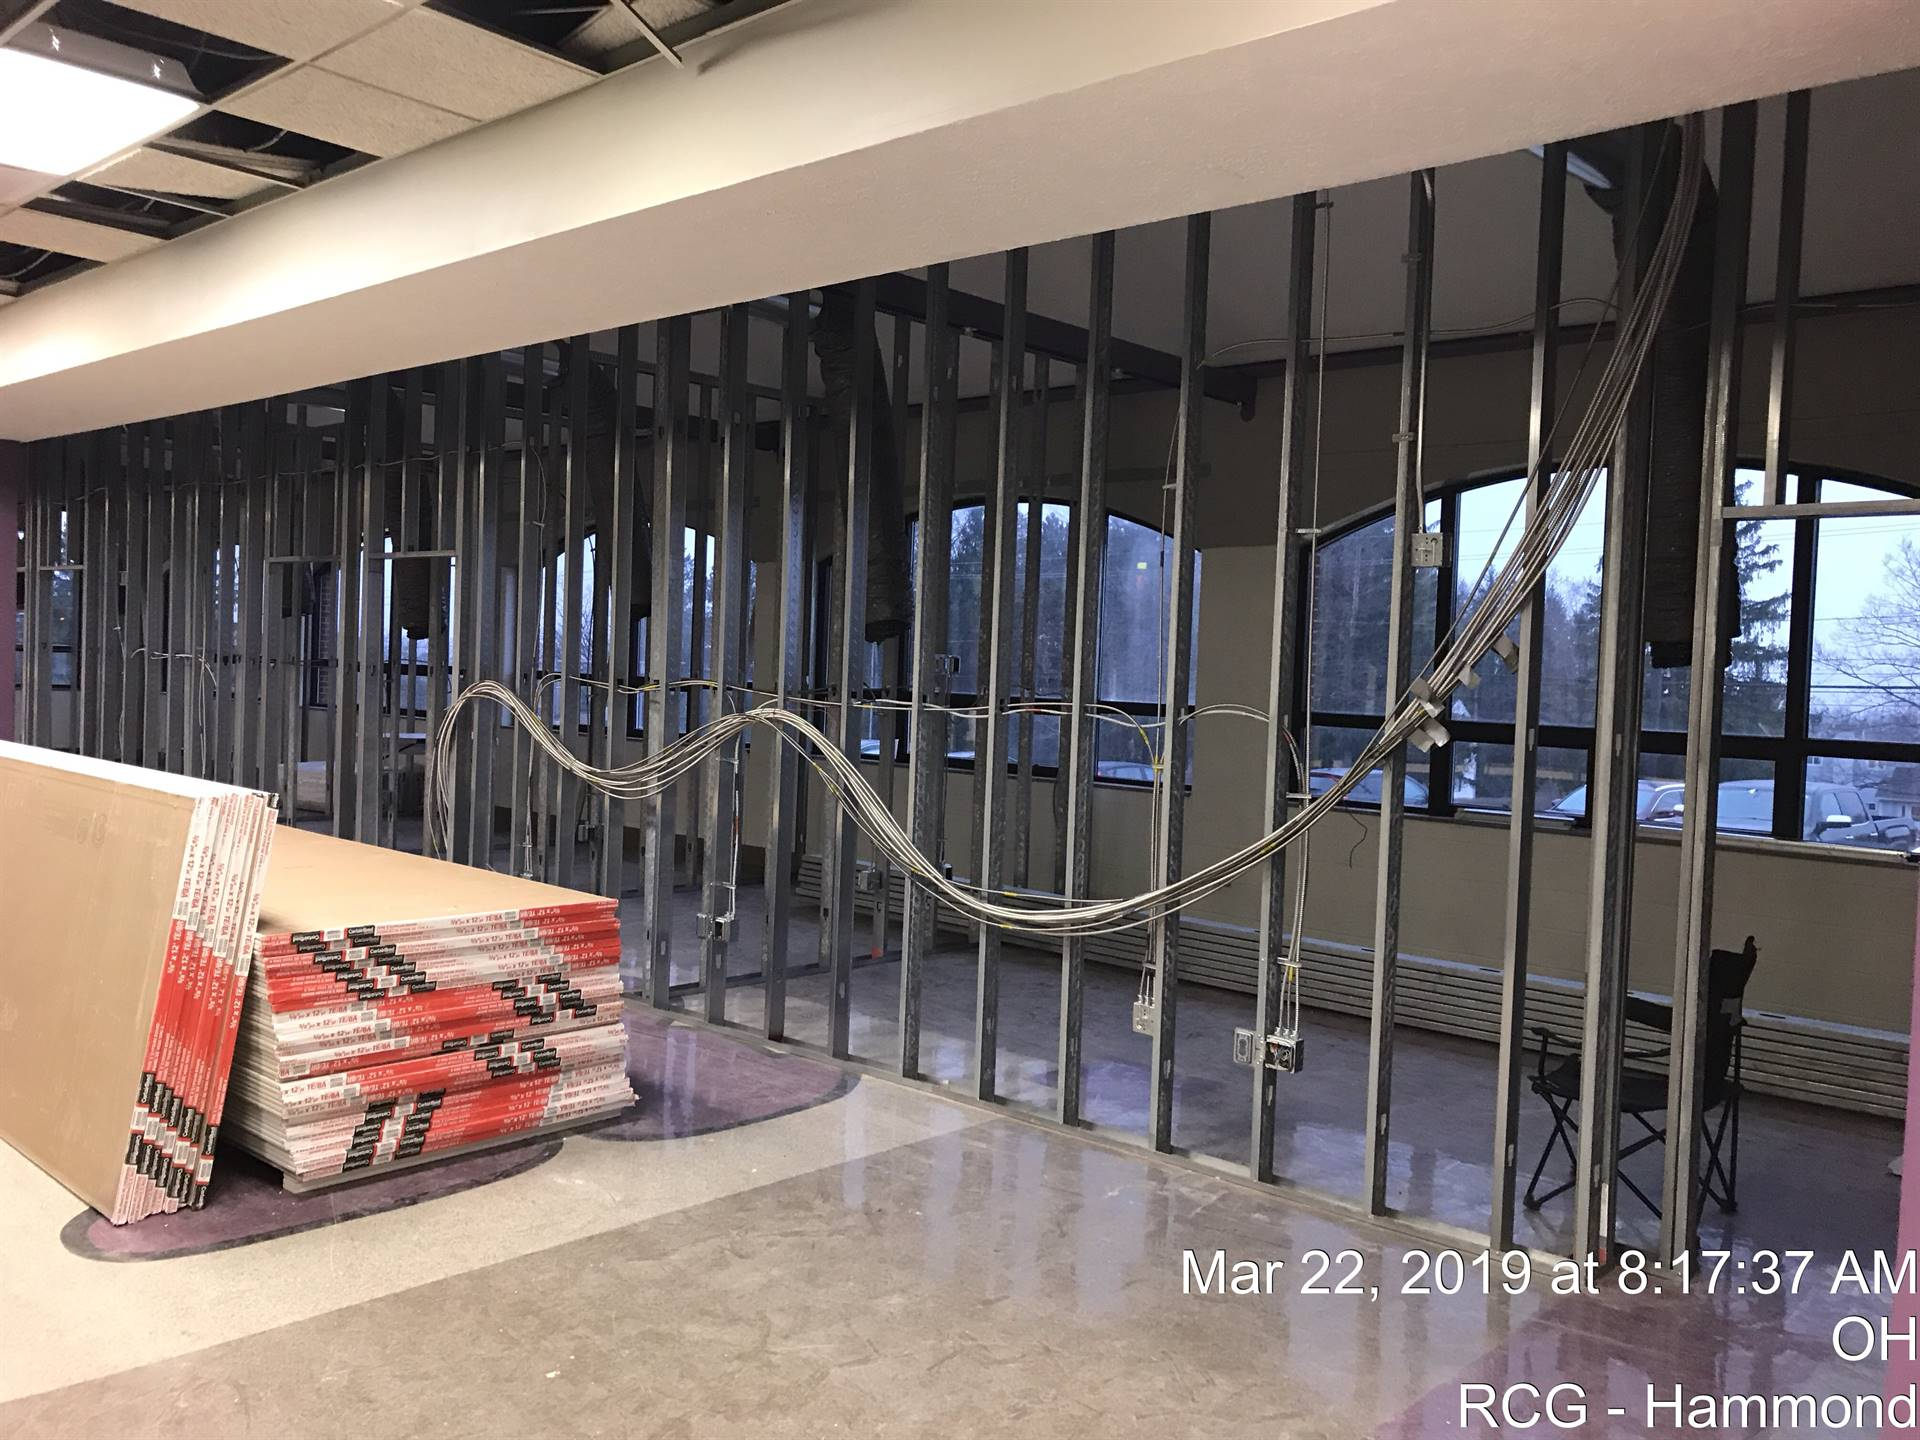 NRHS - Community Room transformation to temporary offices - March 22, 2019